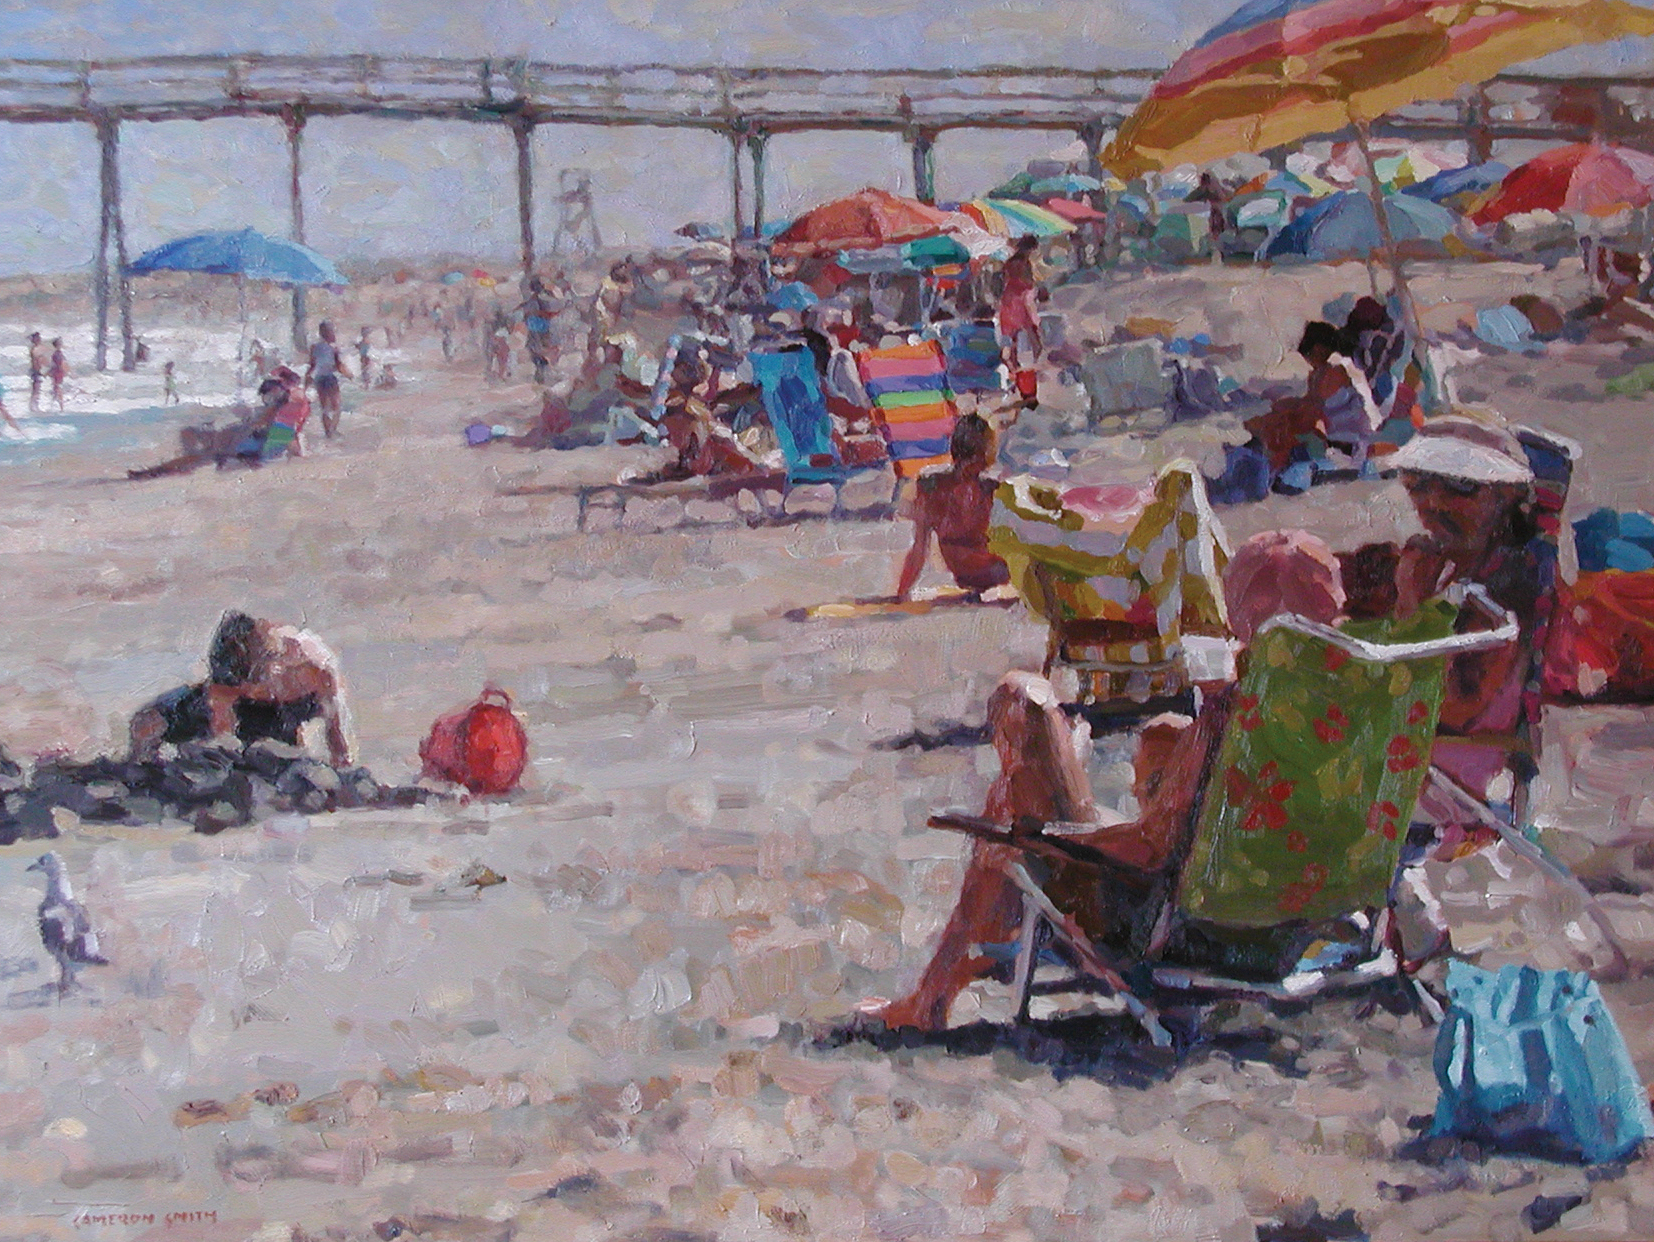 Walls Fine Art Gallery, Cameron Smith, fine art, wilmington artist, north carolina artist, Wrightsville Beach, Wilmington native, wrightsville beach surfer